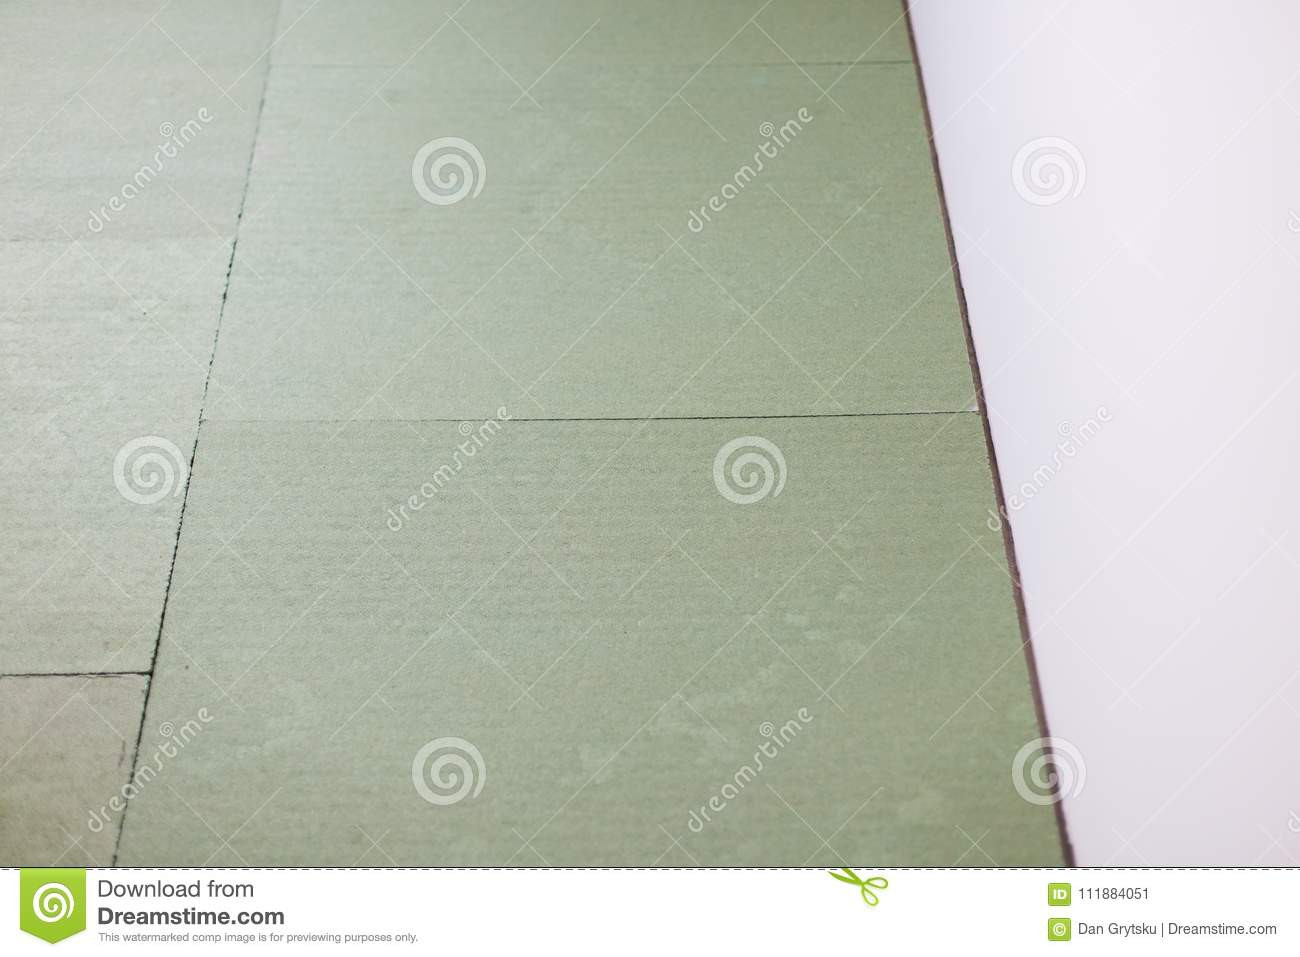 how to install underlayment for hardwood floors of insulated flooring underlayment laminate www topsimages com inside laying laminate flooring insulated underlay floor ready click lock wood effect laminate flooring to be laid